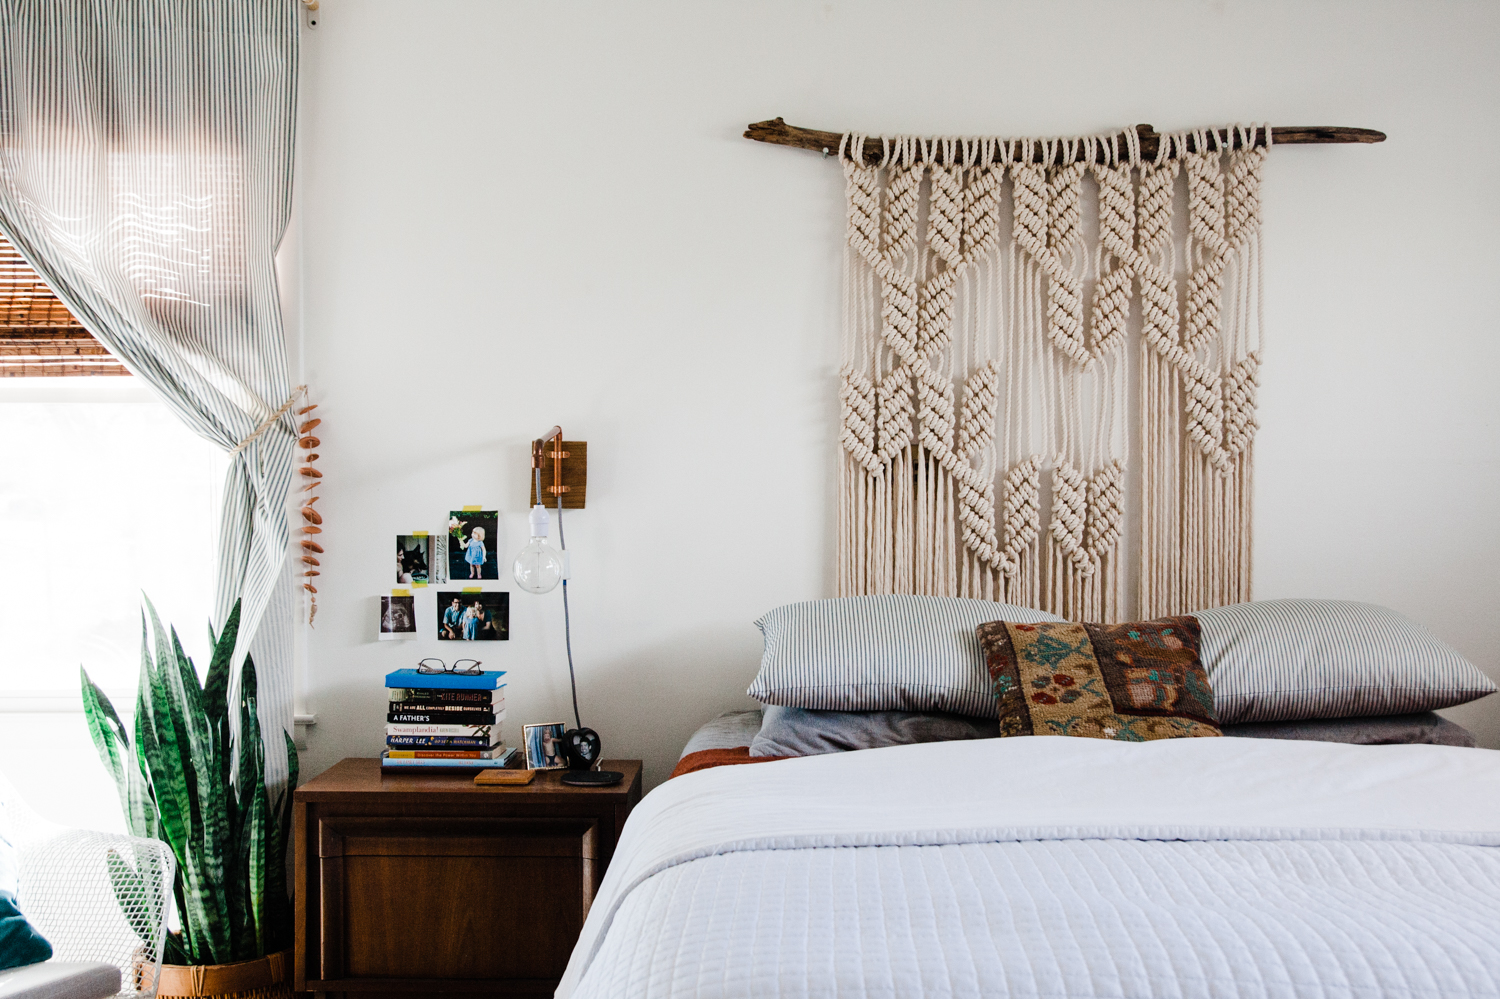 The Perks Of Decorating Slowly Palmer S Neutral Boho Bedroom Retro Den Vintage Furniture And Homewares